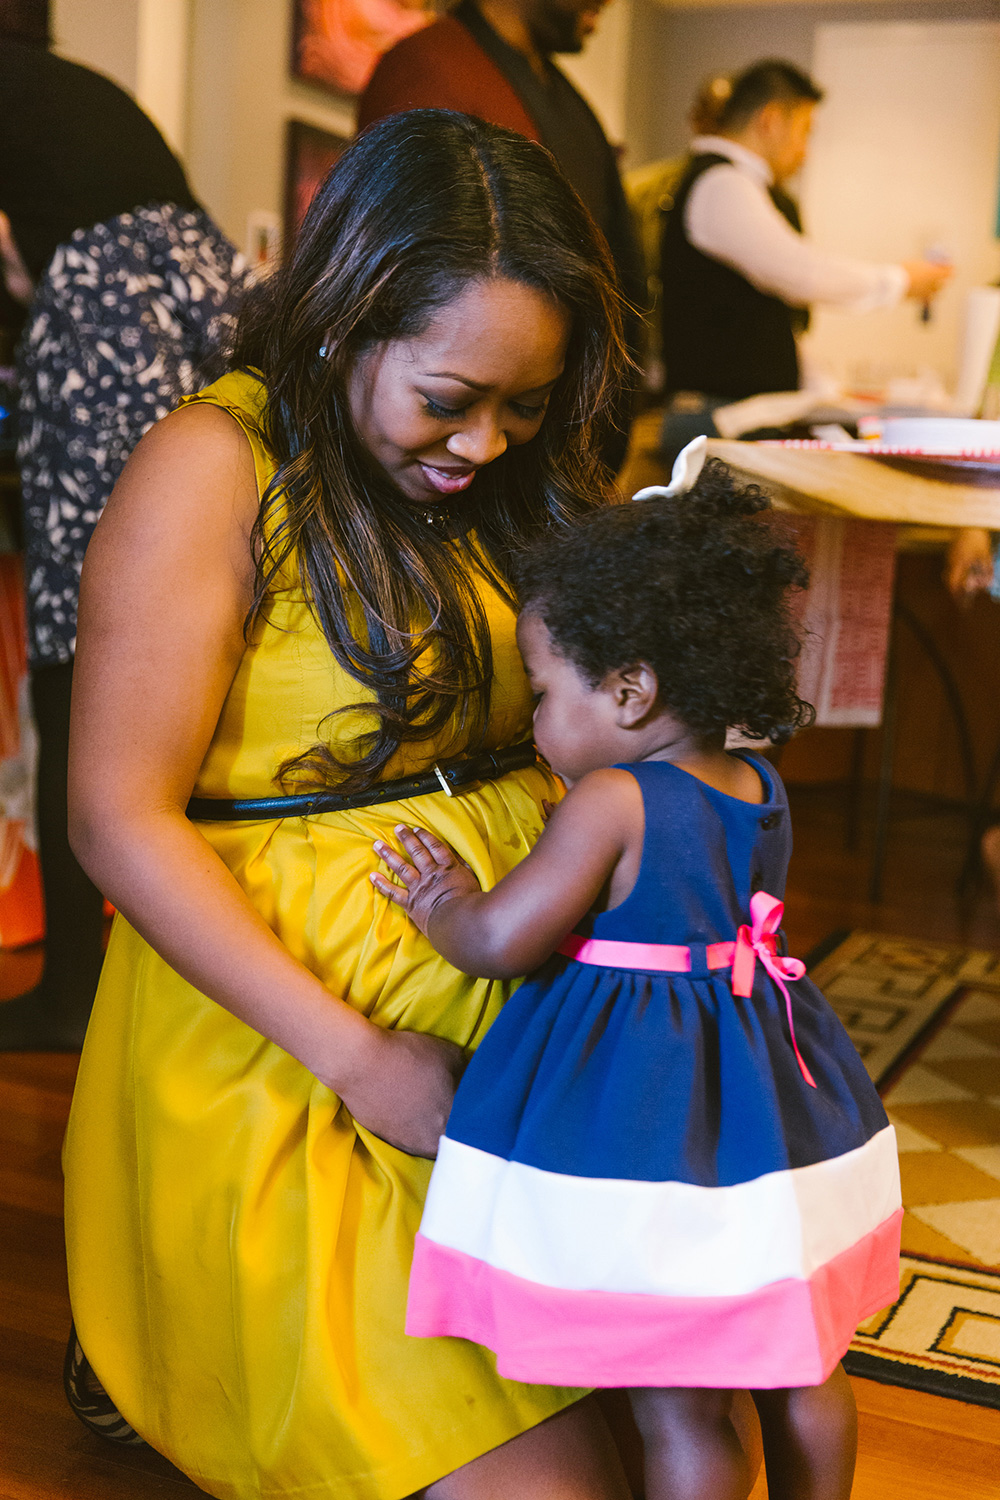 WEB_2015_April_BabyShower_EuniceDockery_0621.jpg